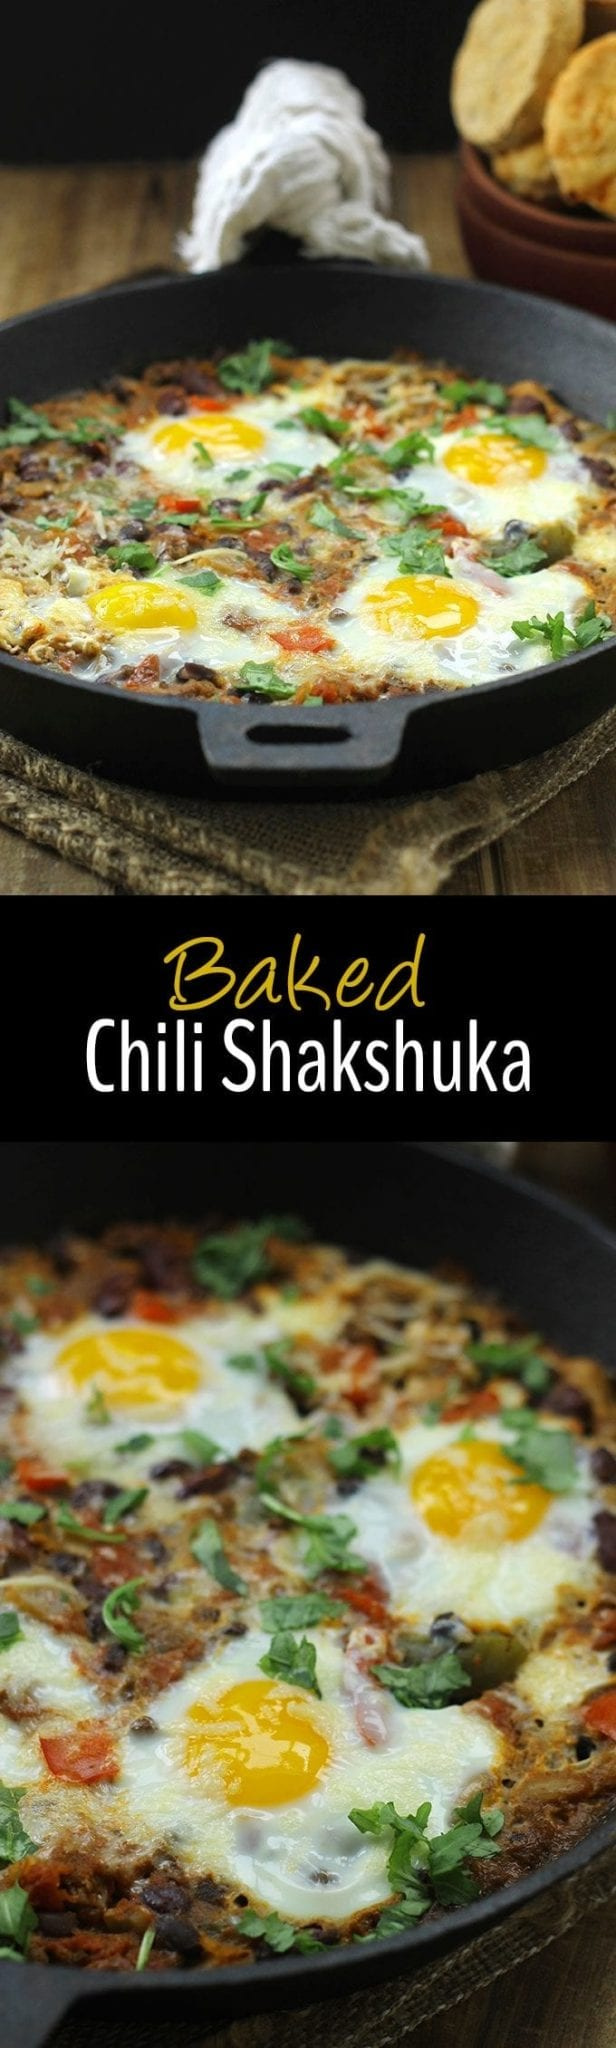 Ever wondered what to do with that leftover chili? This warm and hearty Baked Chili Shakshuka is the perfect use! Plus it makes a delicious breakfast!